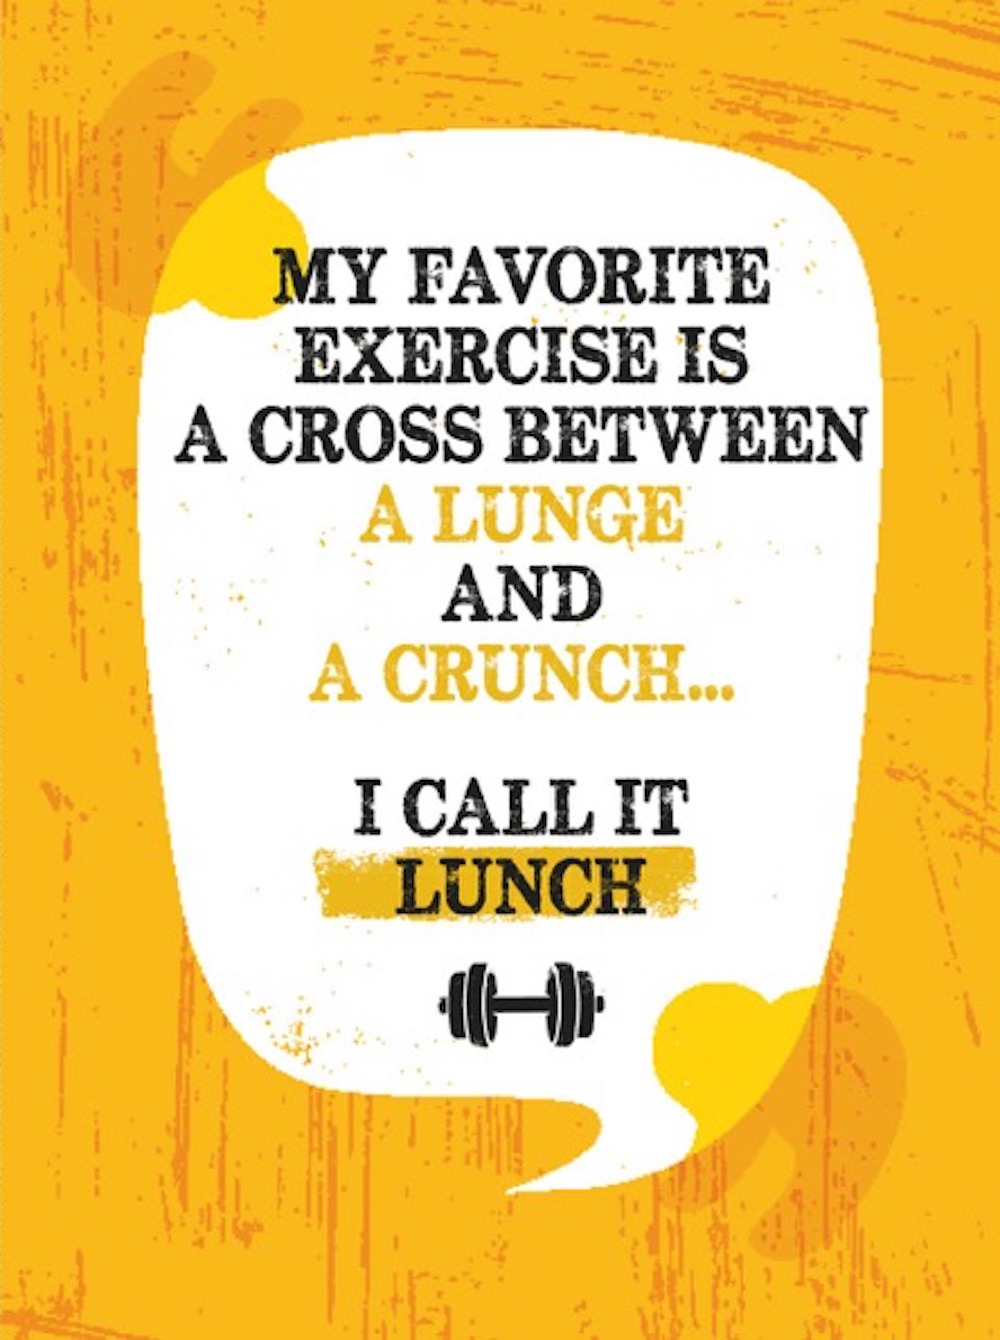 Spreuk van de week: My favorite exercise is a cross between a lunge and a crunch… I call it lunch